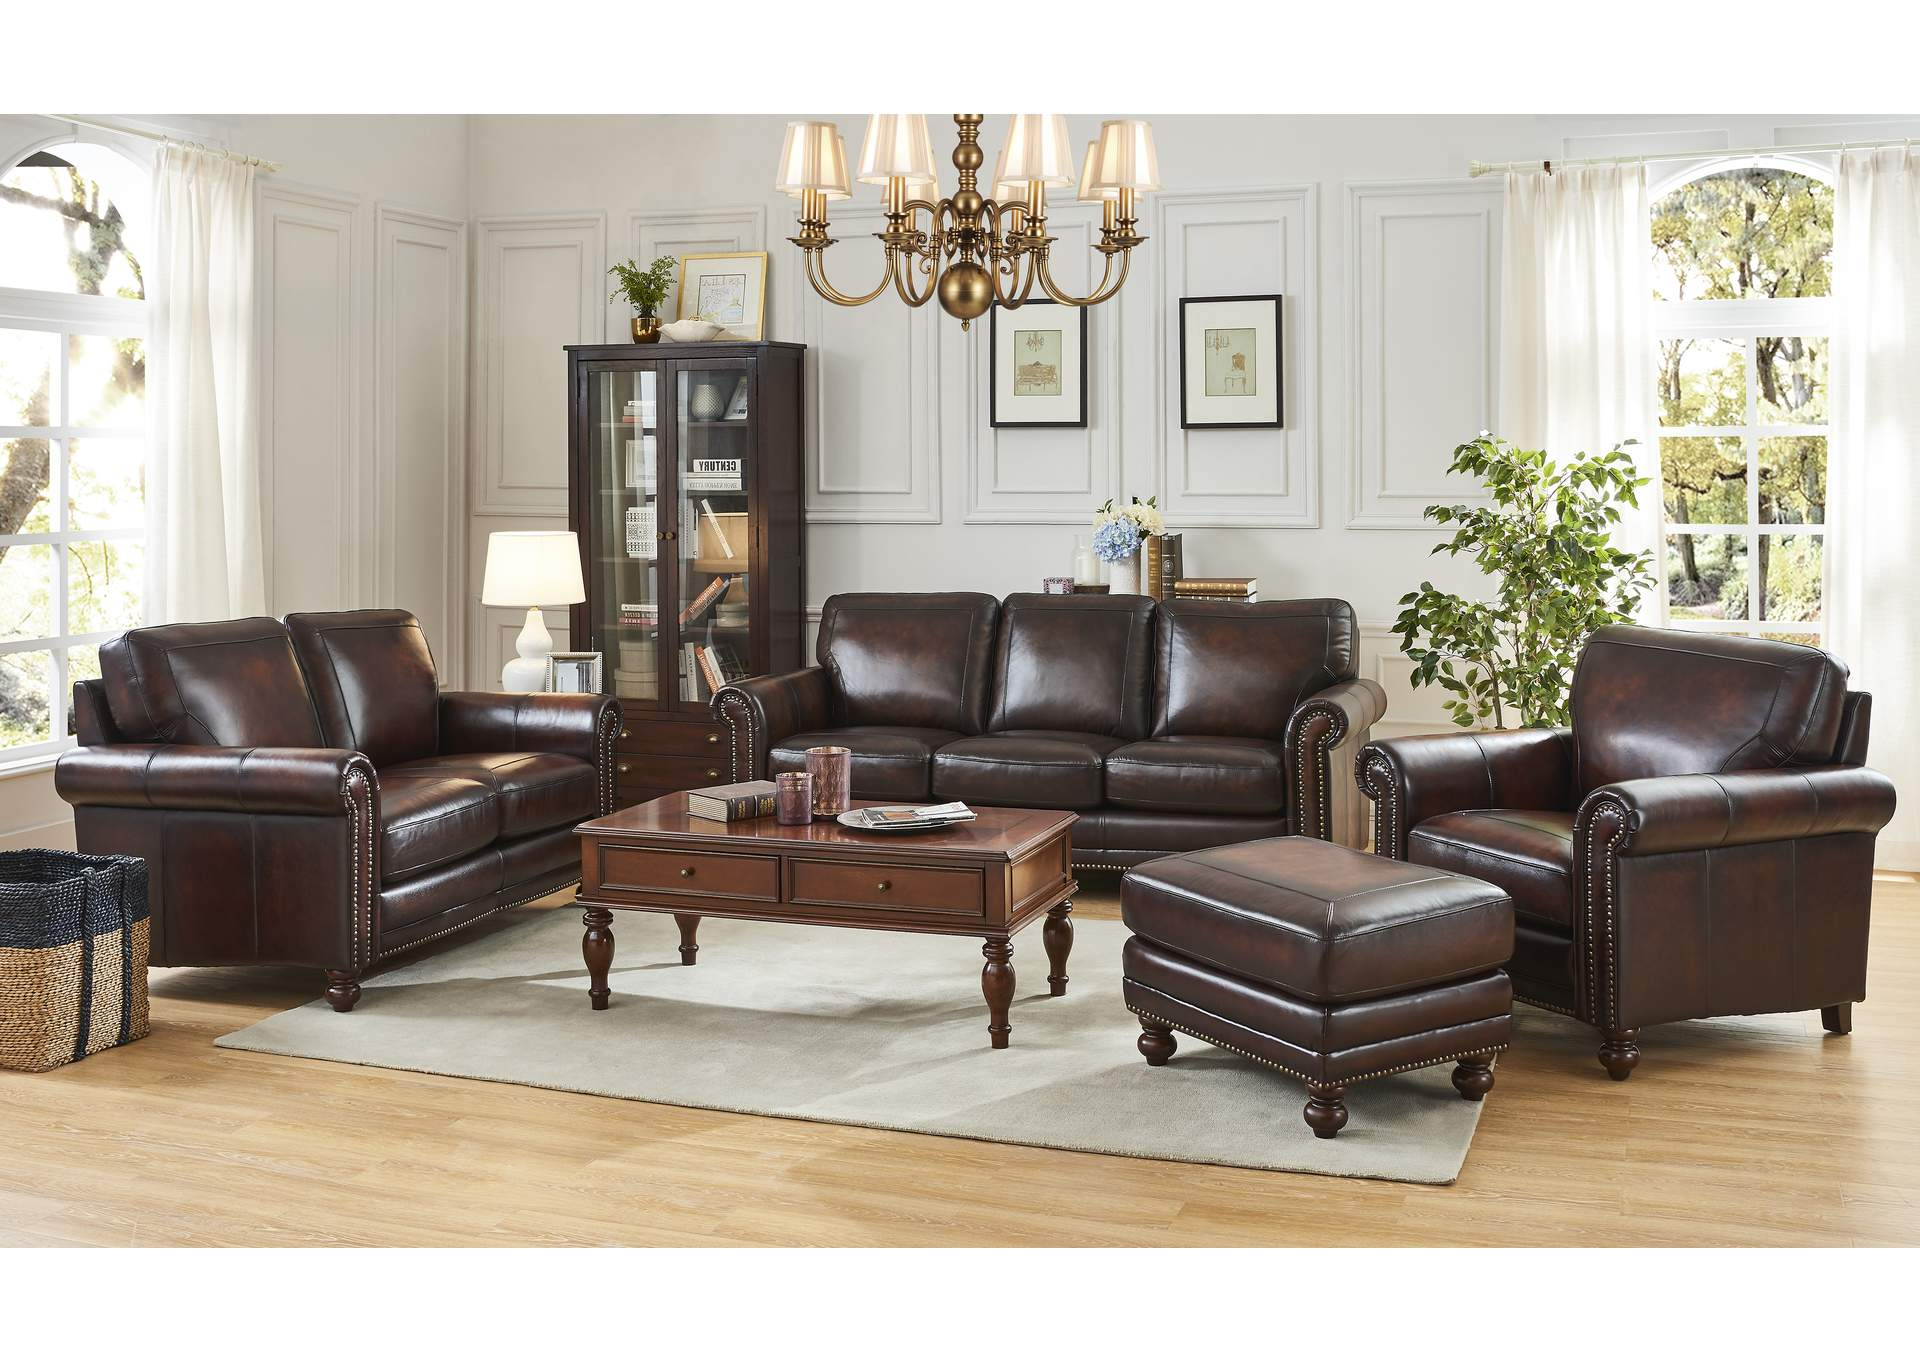 3pc Polyfiber Sectional Sofas With Nail Head Trim Blue/gray Throughout Most Popular Hampton L501m Brown 3 Piece Sofa Set Furniture Outlet (View 20 of 20)